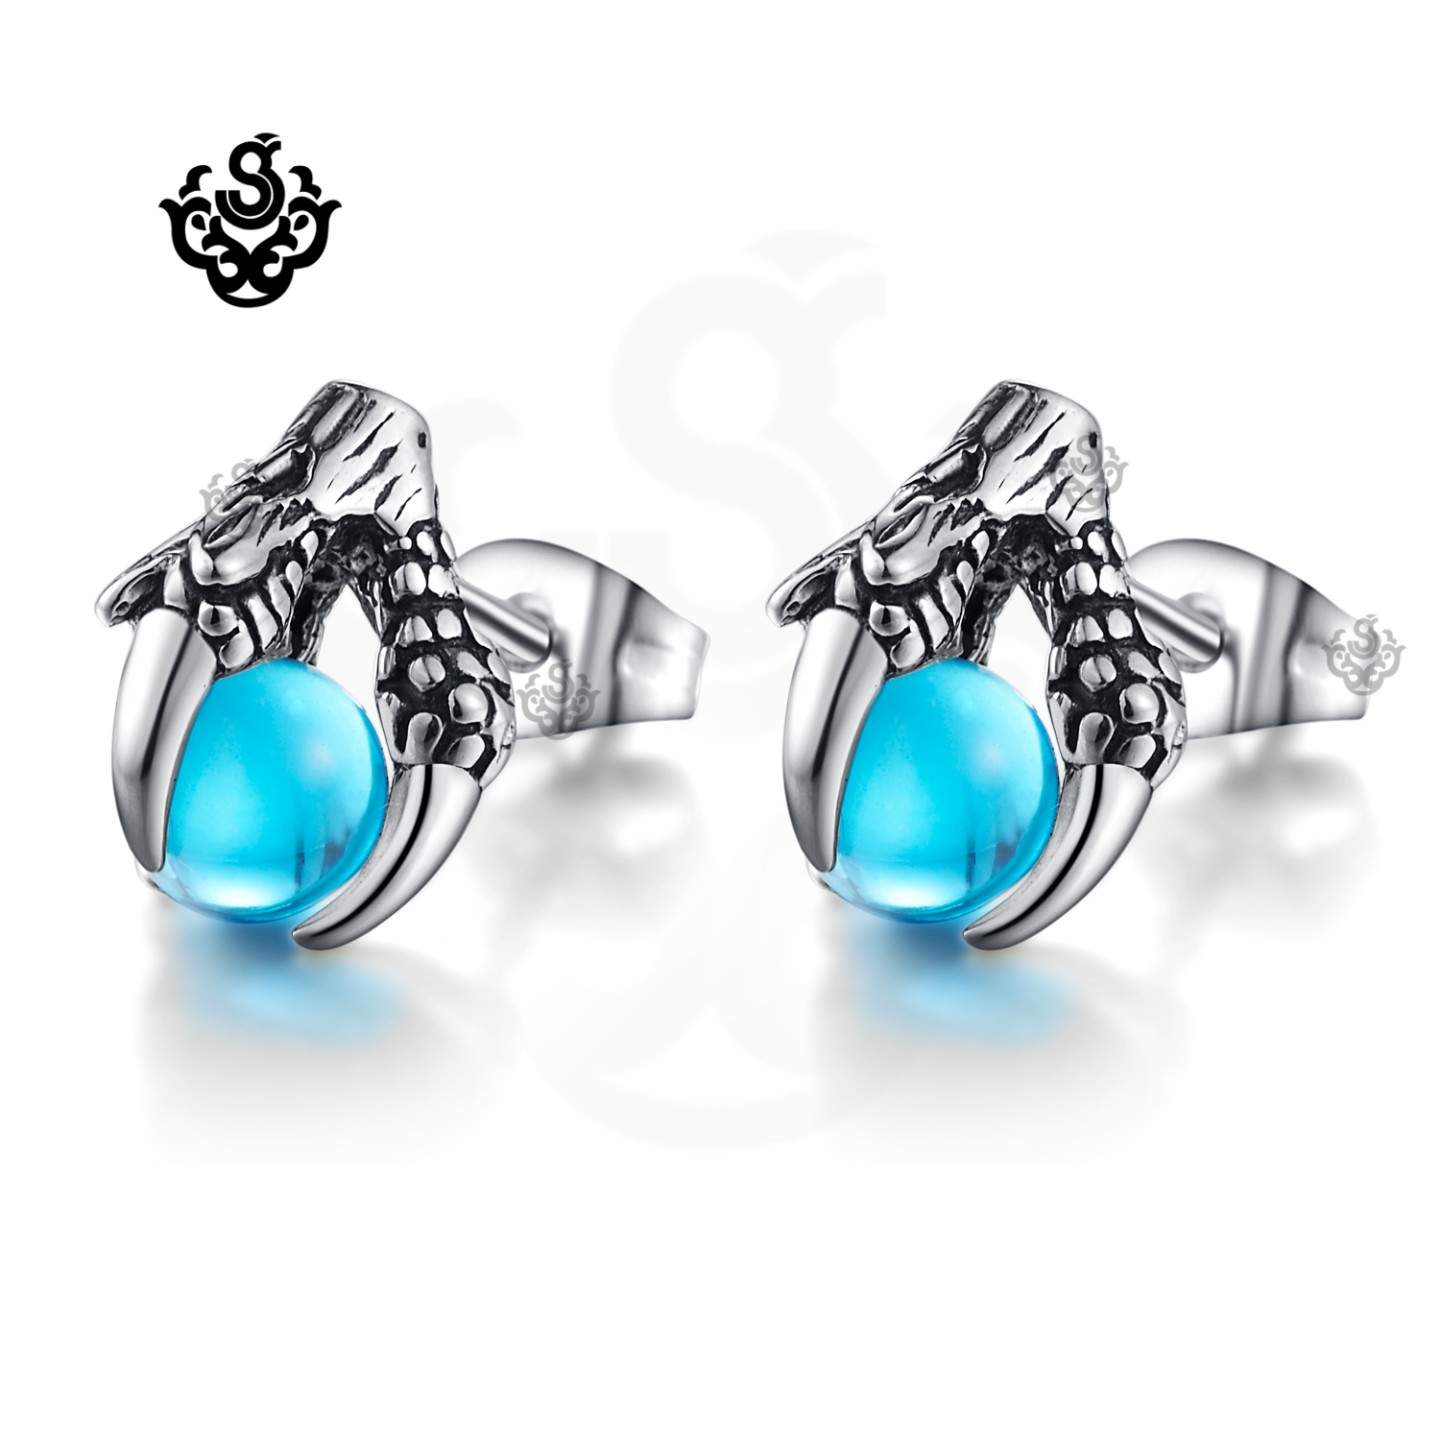 Silver stainless steel soft Gothic vintage style heart studs earrings unisex